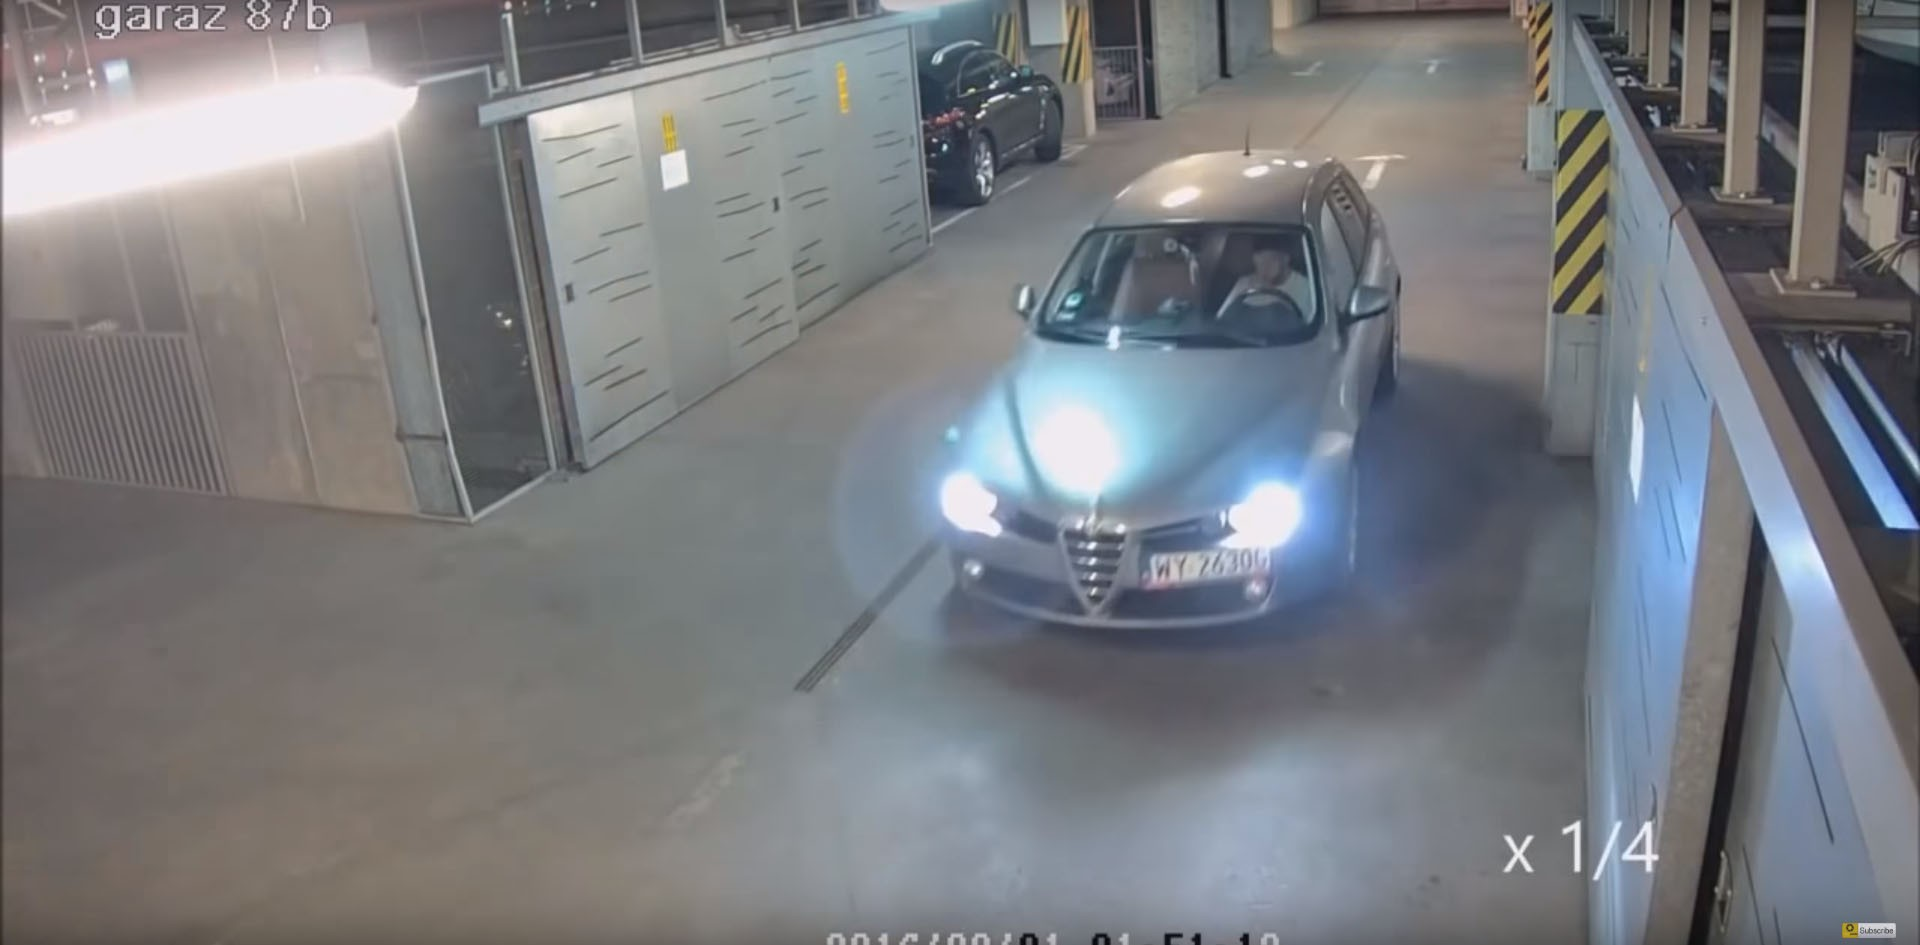 drunk man has a hard time missing any wall as he exists a parking drunk driver exiting parking garage